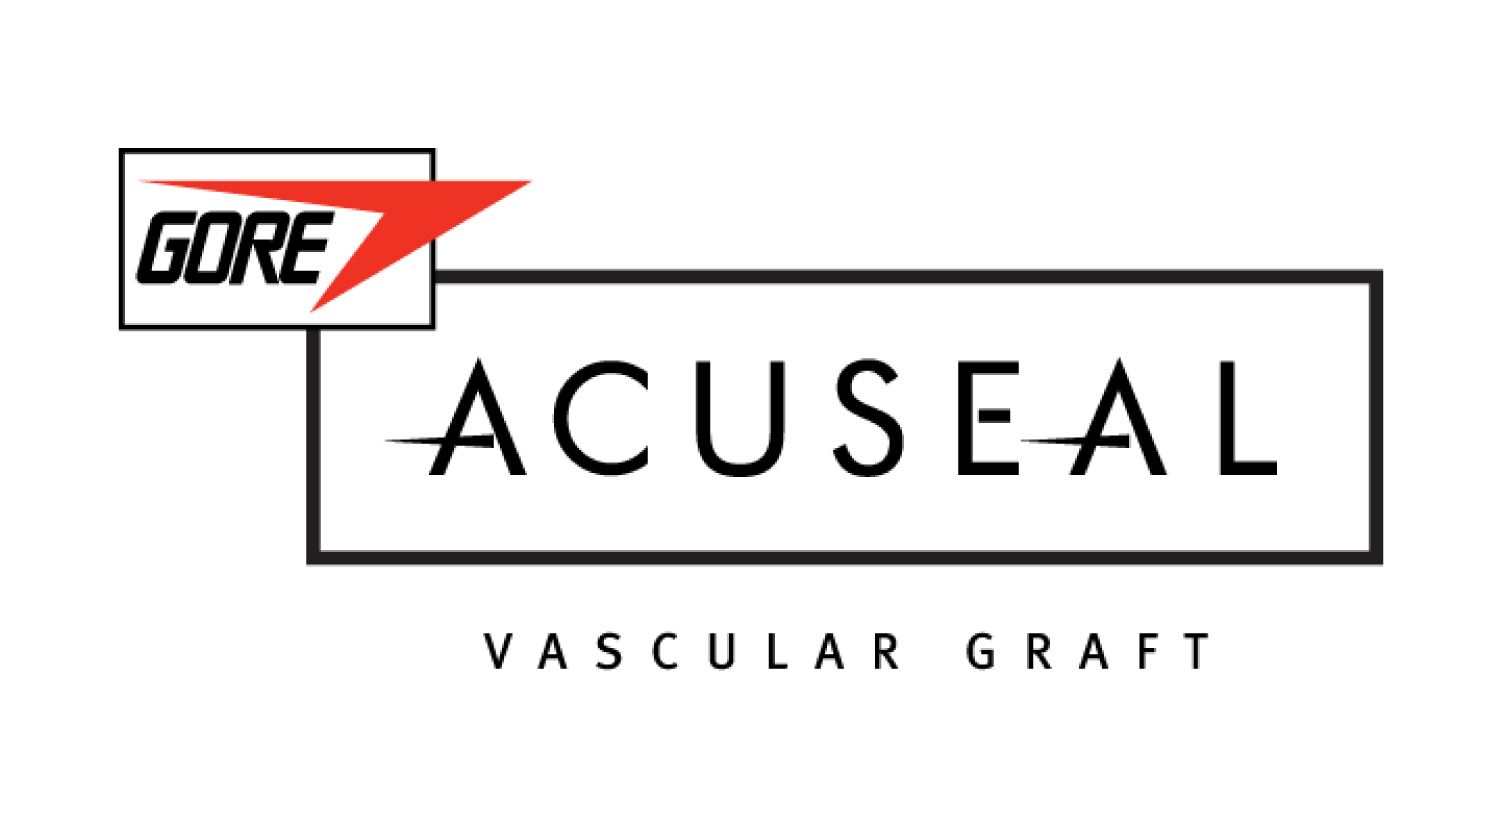 ACUSEAL VASCULAR GRAFT